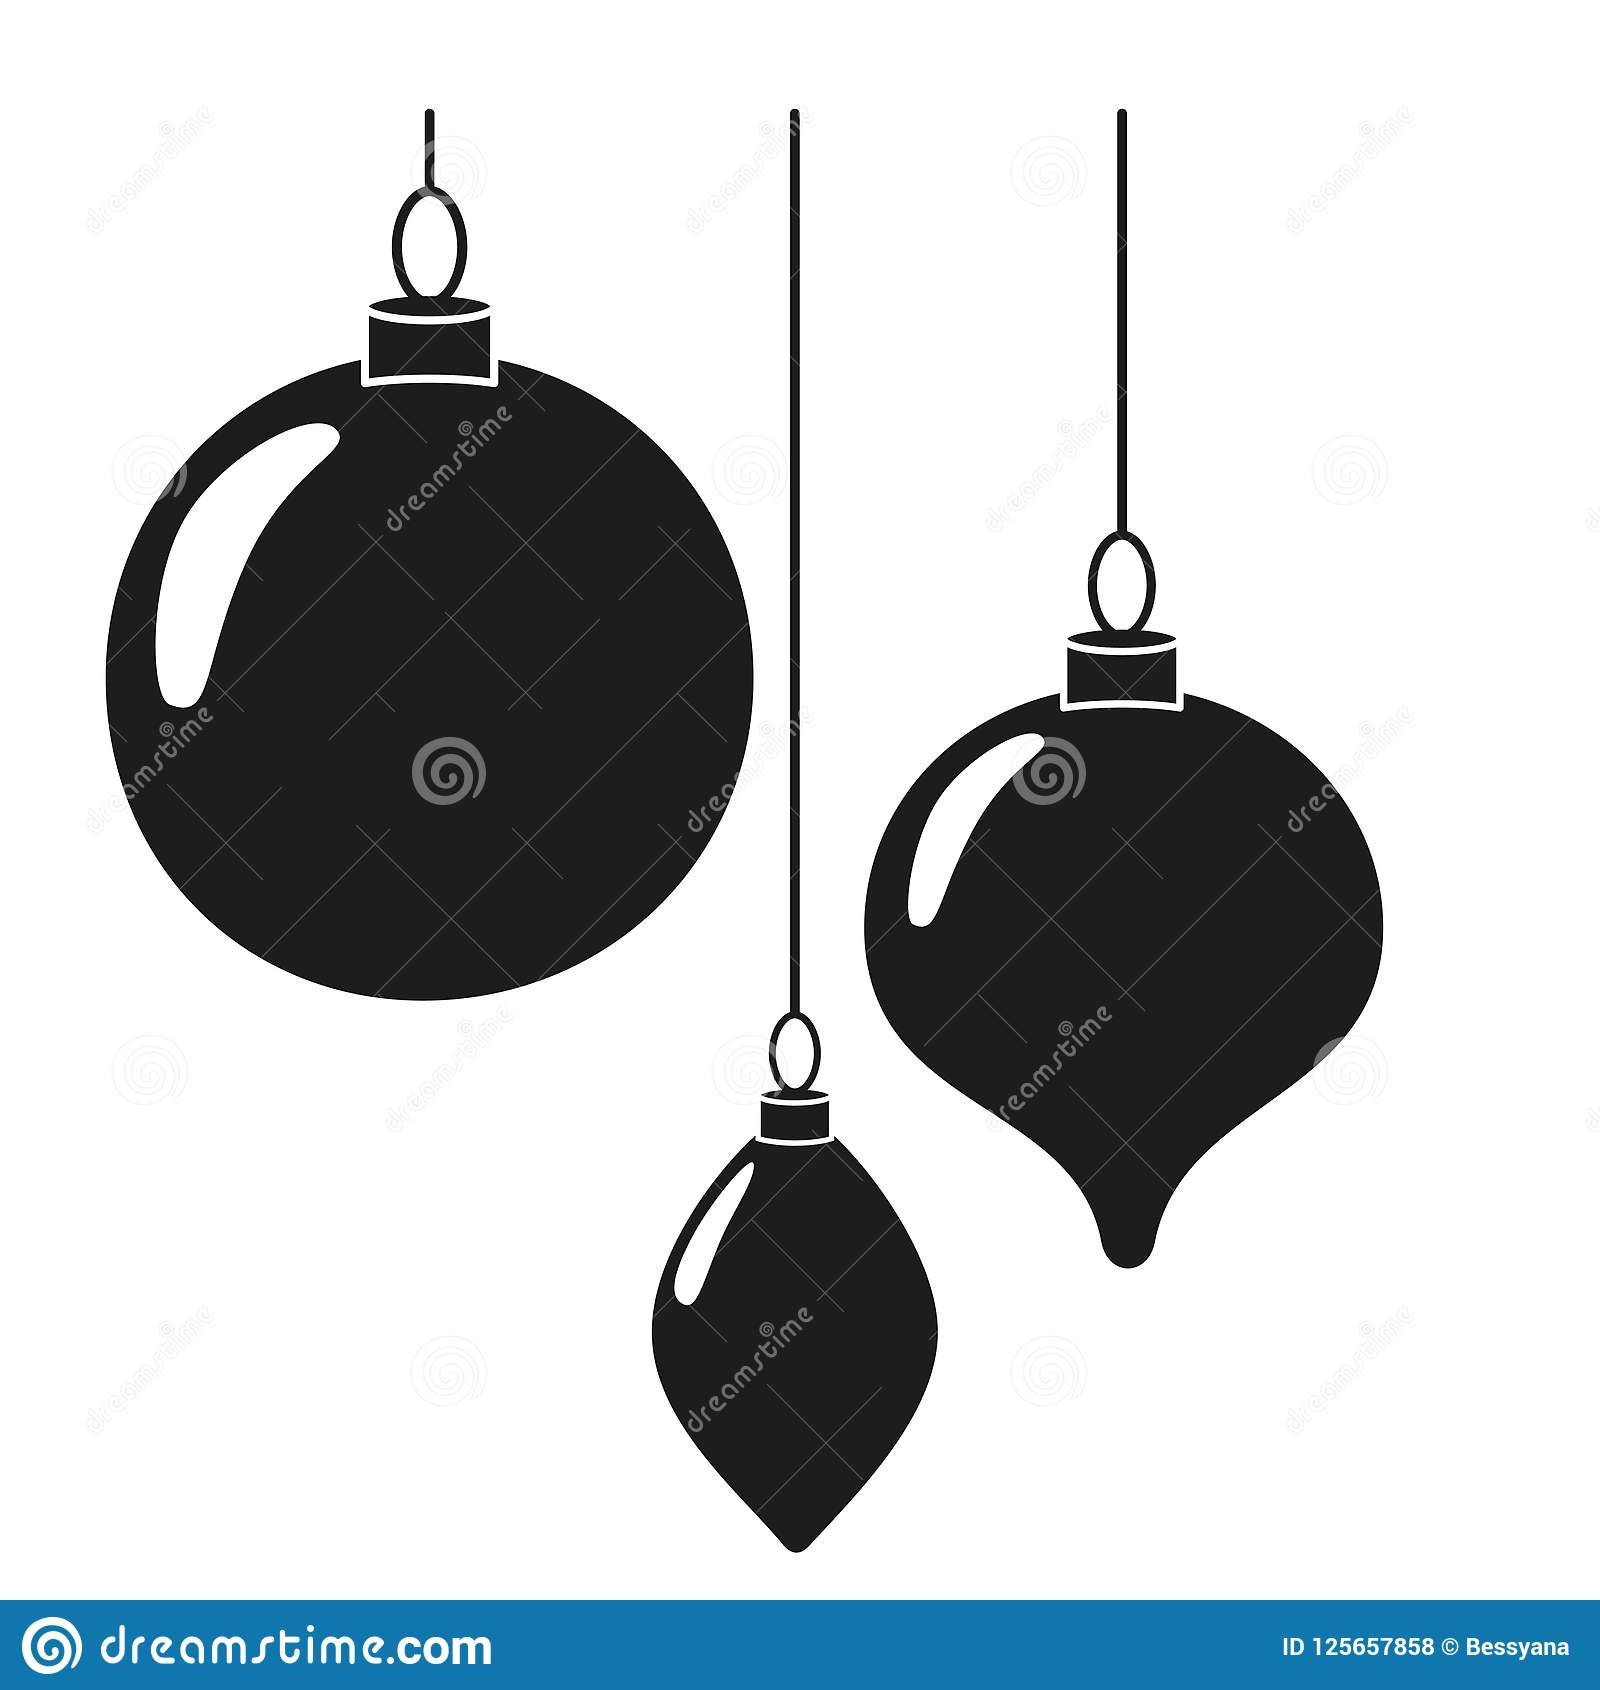 download black white christmas tree decorations silhouette stock vector illustration of noel monochrome